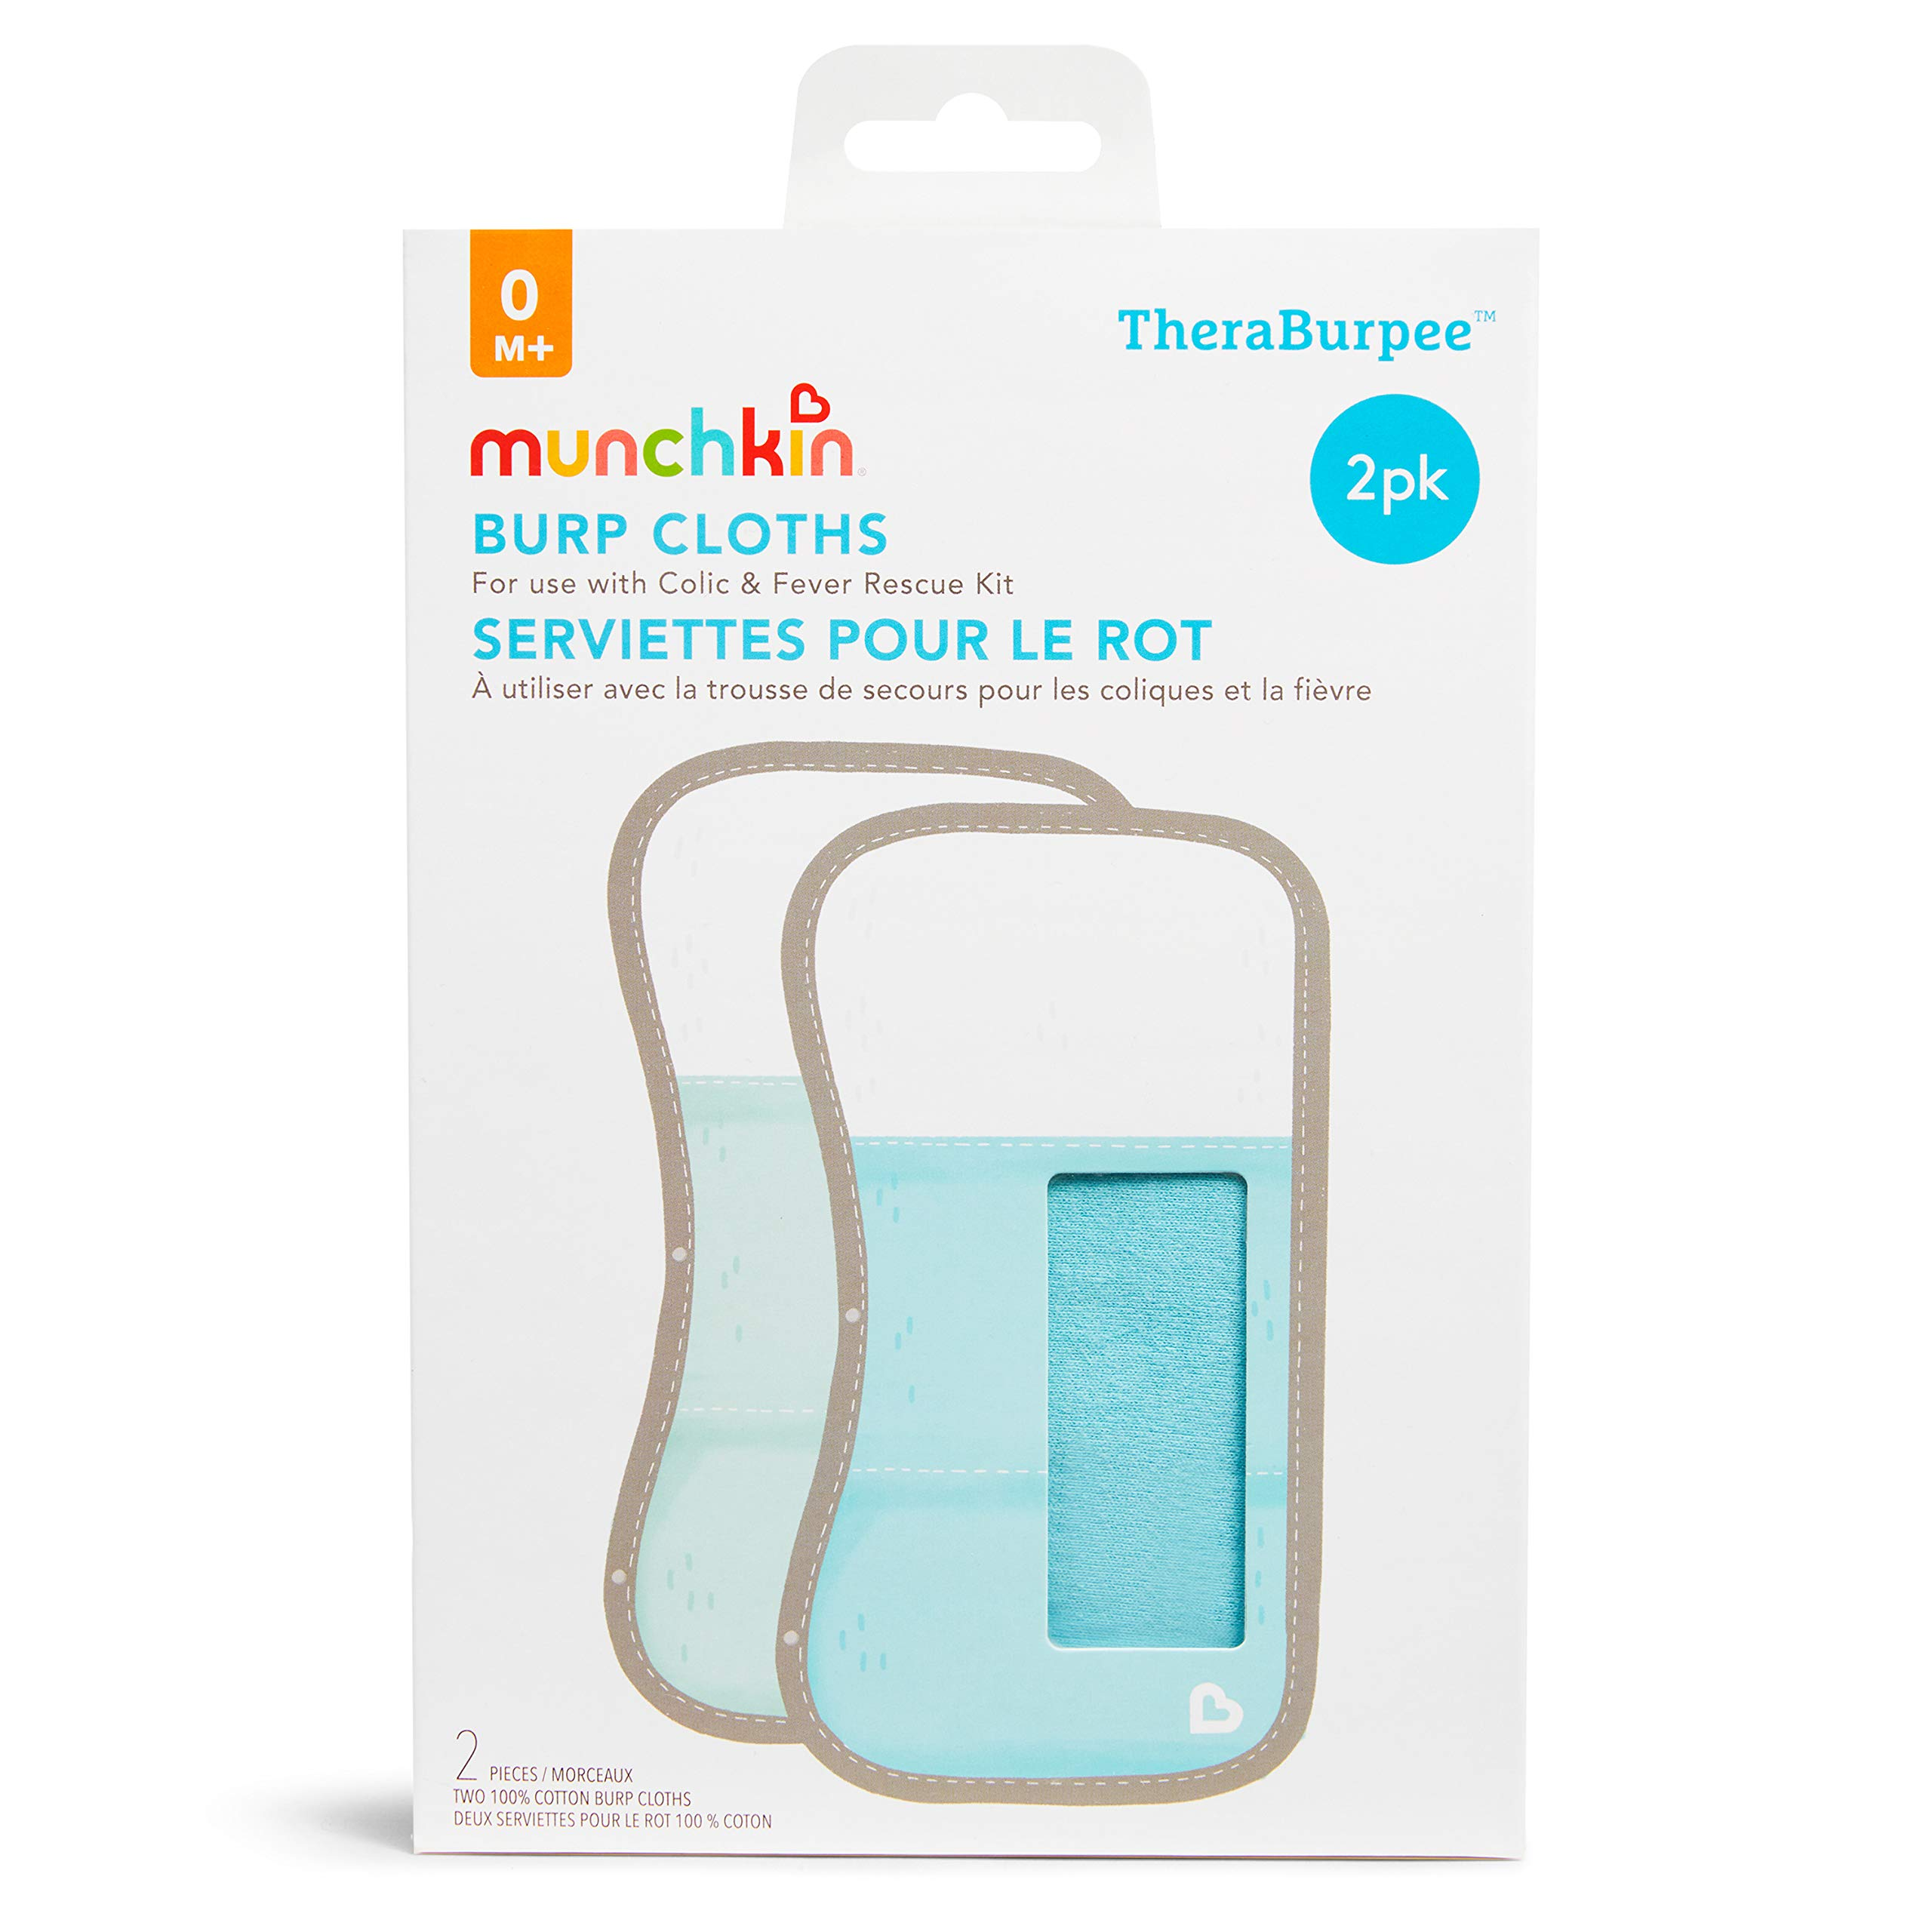 Munchkin TheraBurpee: 2 Pack Burp Cloths with Built-in Pockets, for use with Colic & Fever Rescue Kit, 1 Blue, 1 Mint